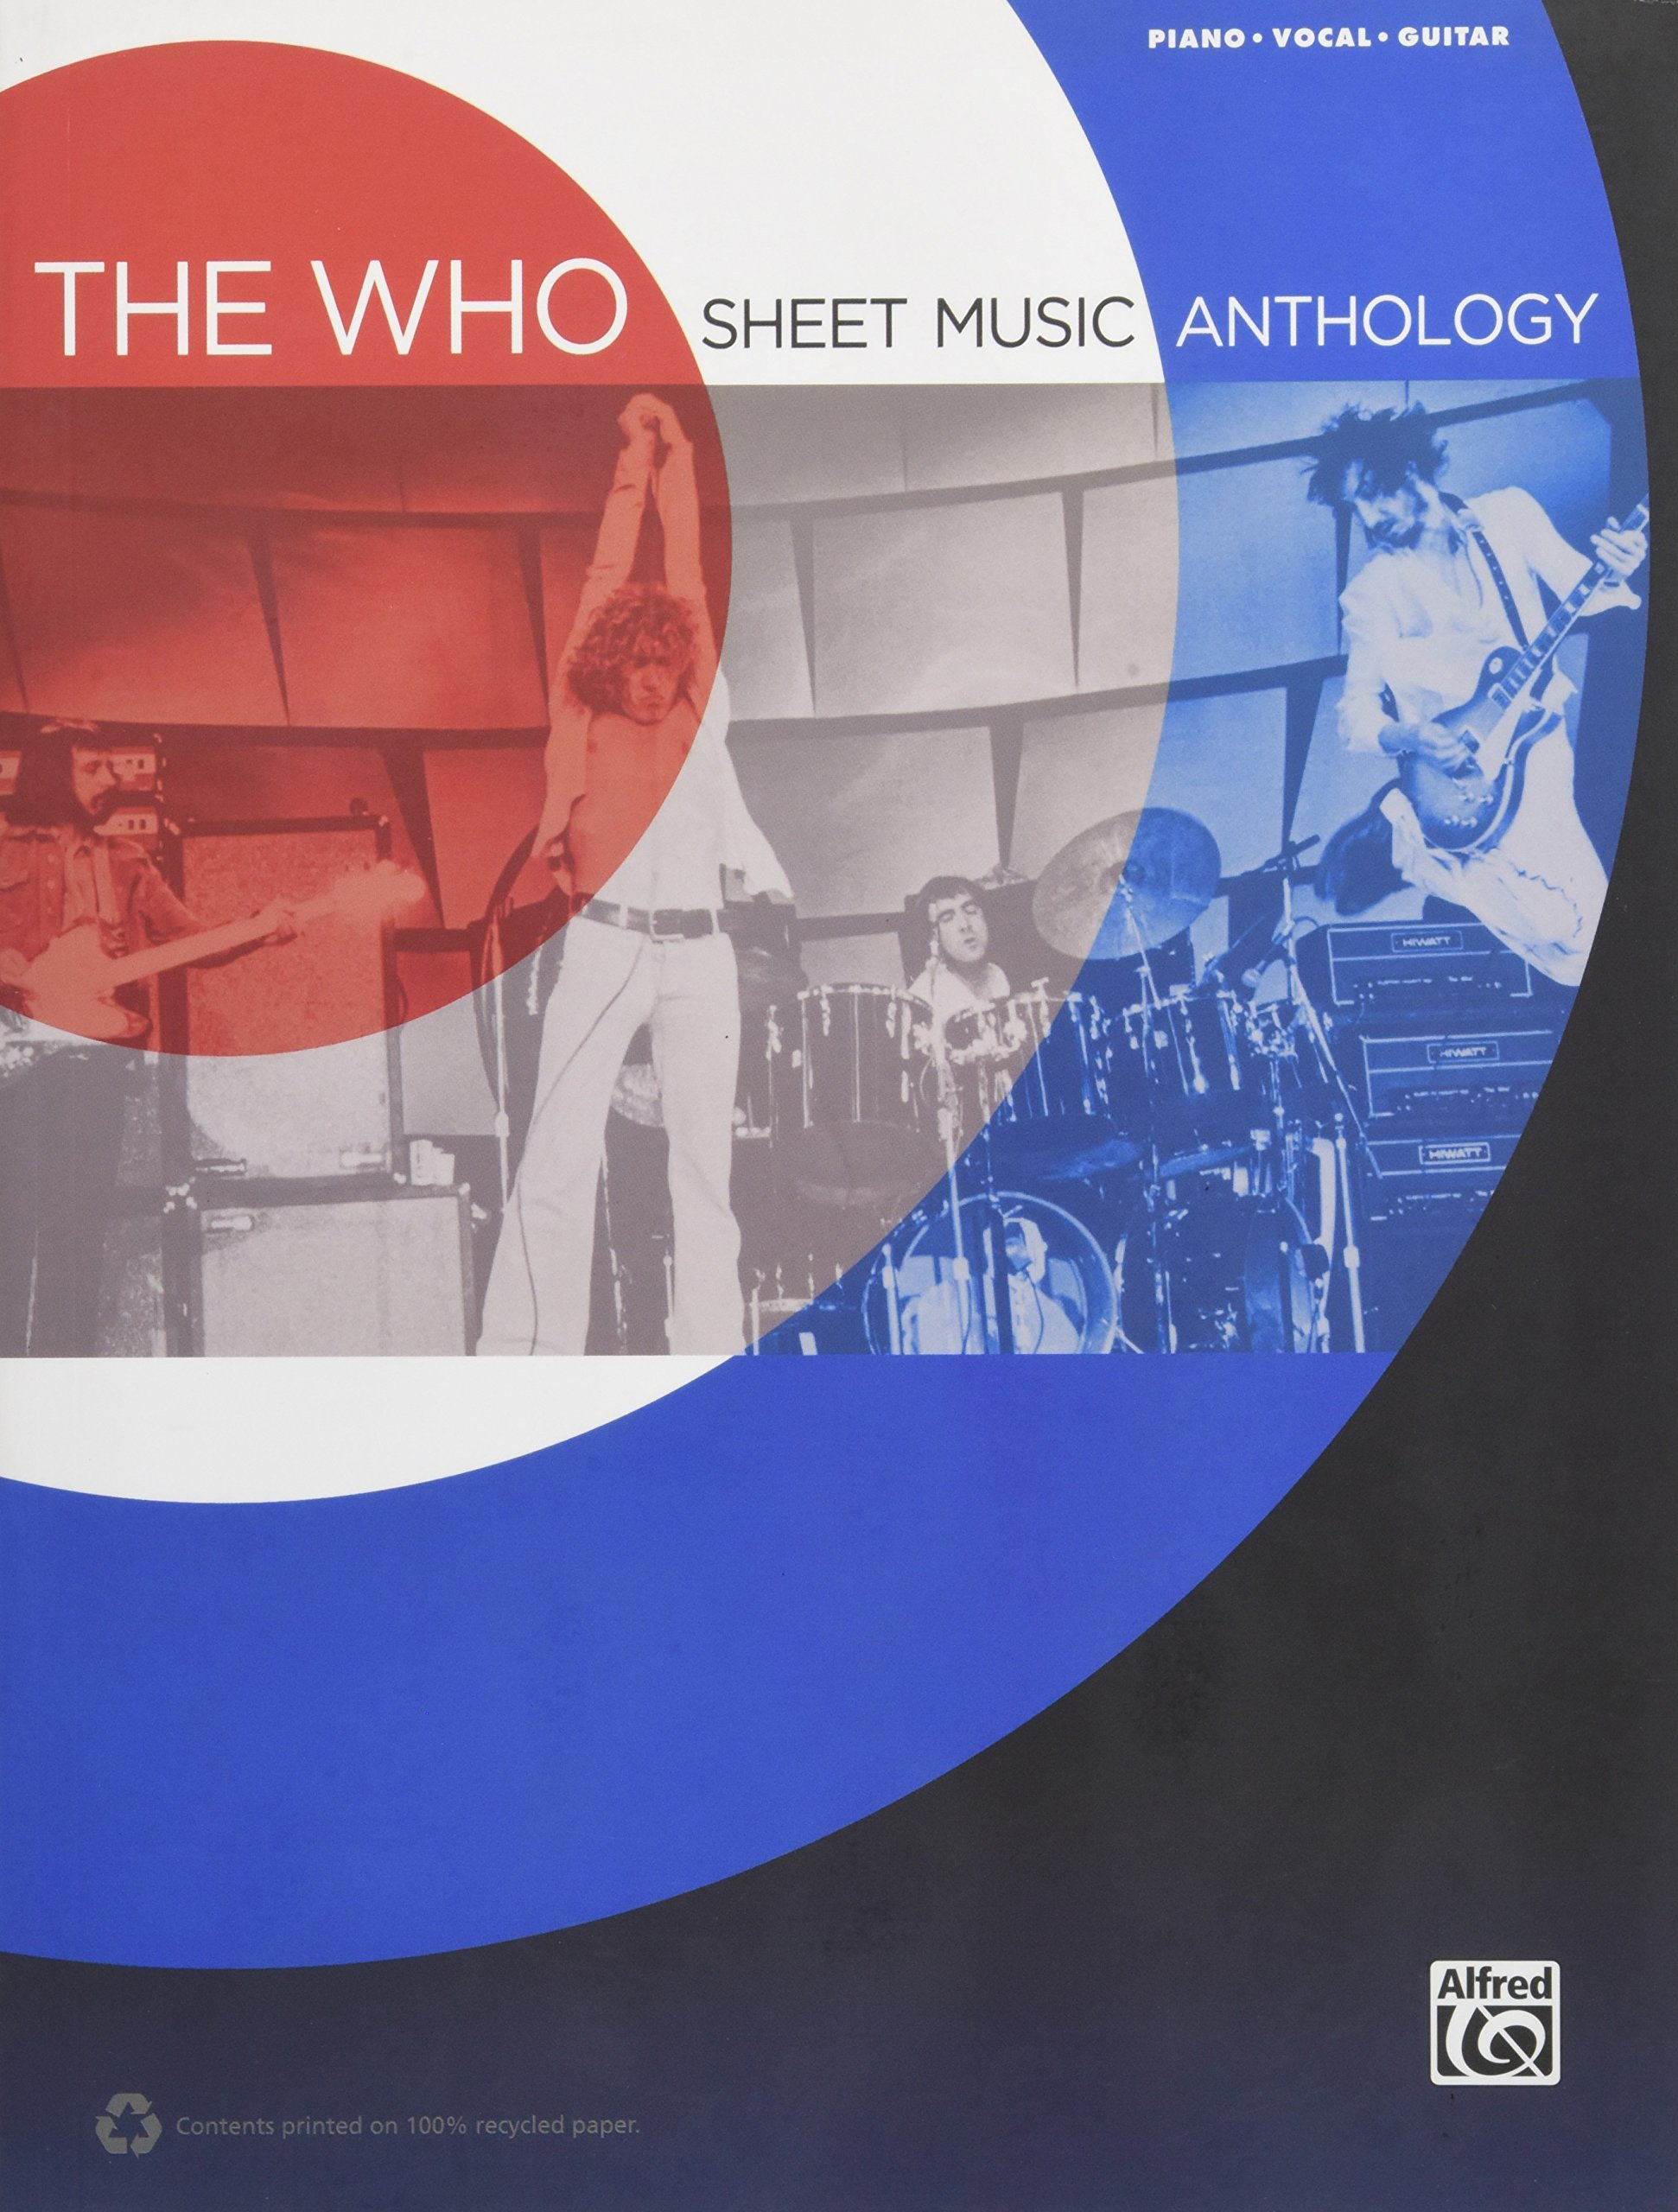 The who sheet music anthology pianovocalguitar the who the who sheet music anthology pianovocalguitar the who 9780739098455 amazon books hexwebz Image collections